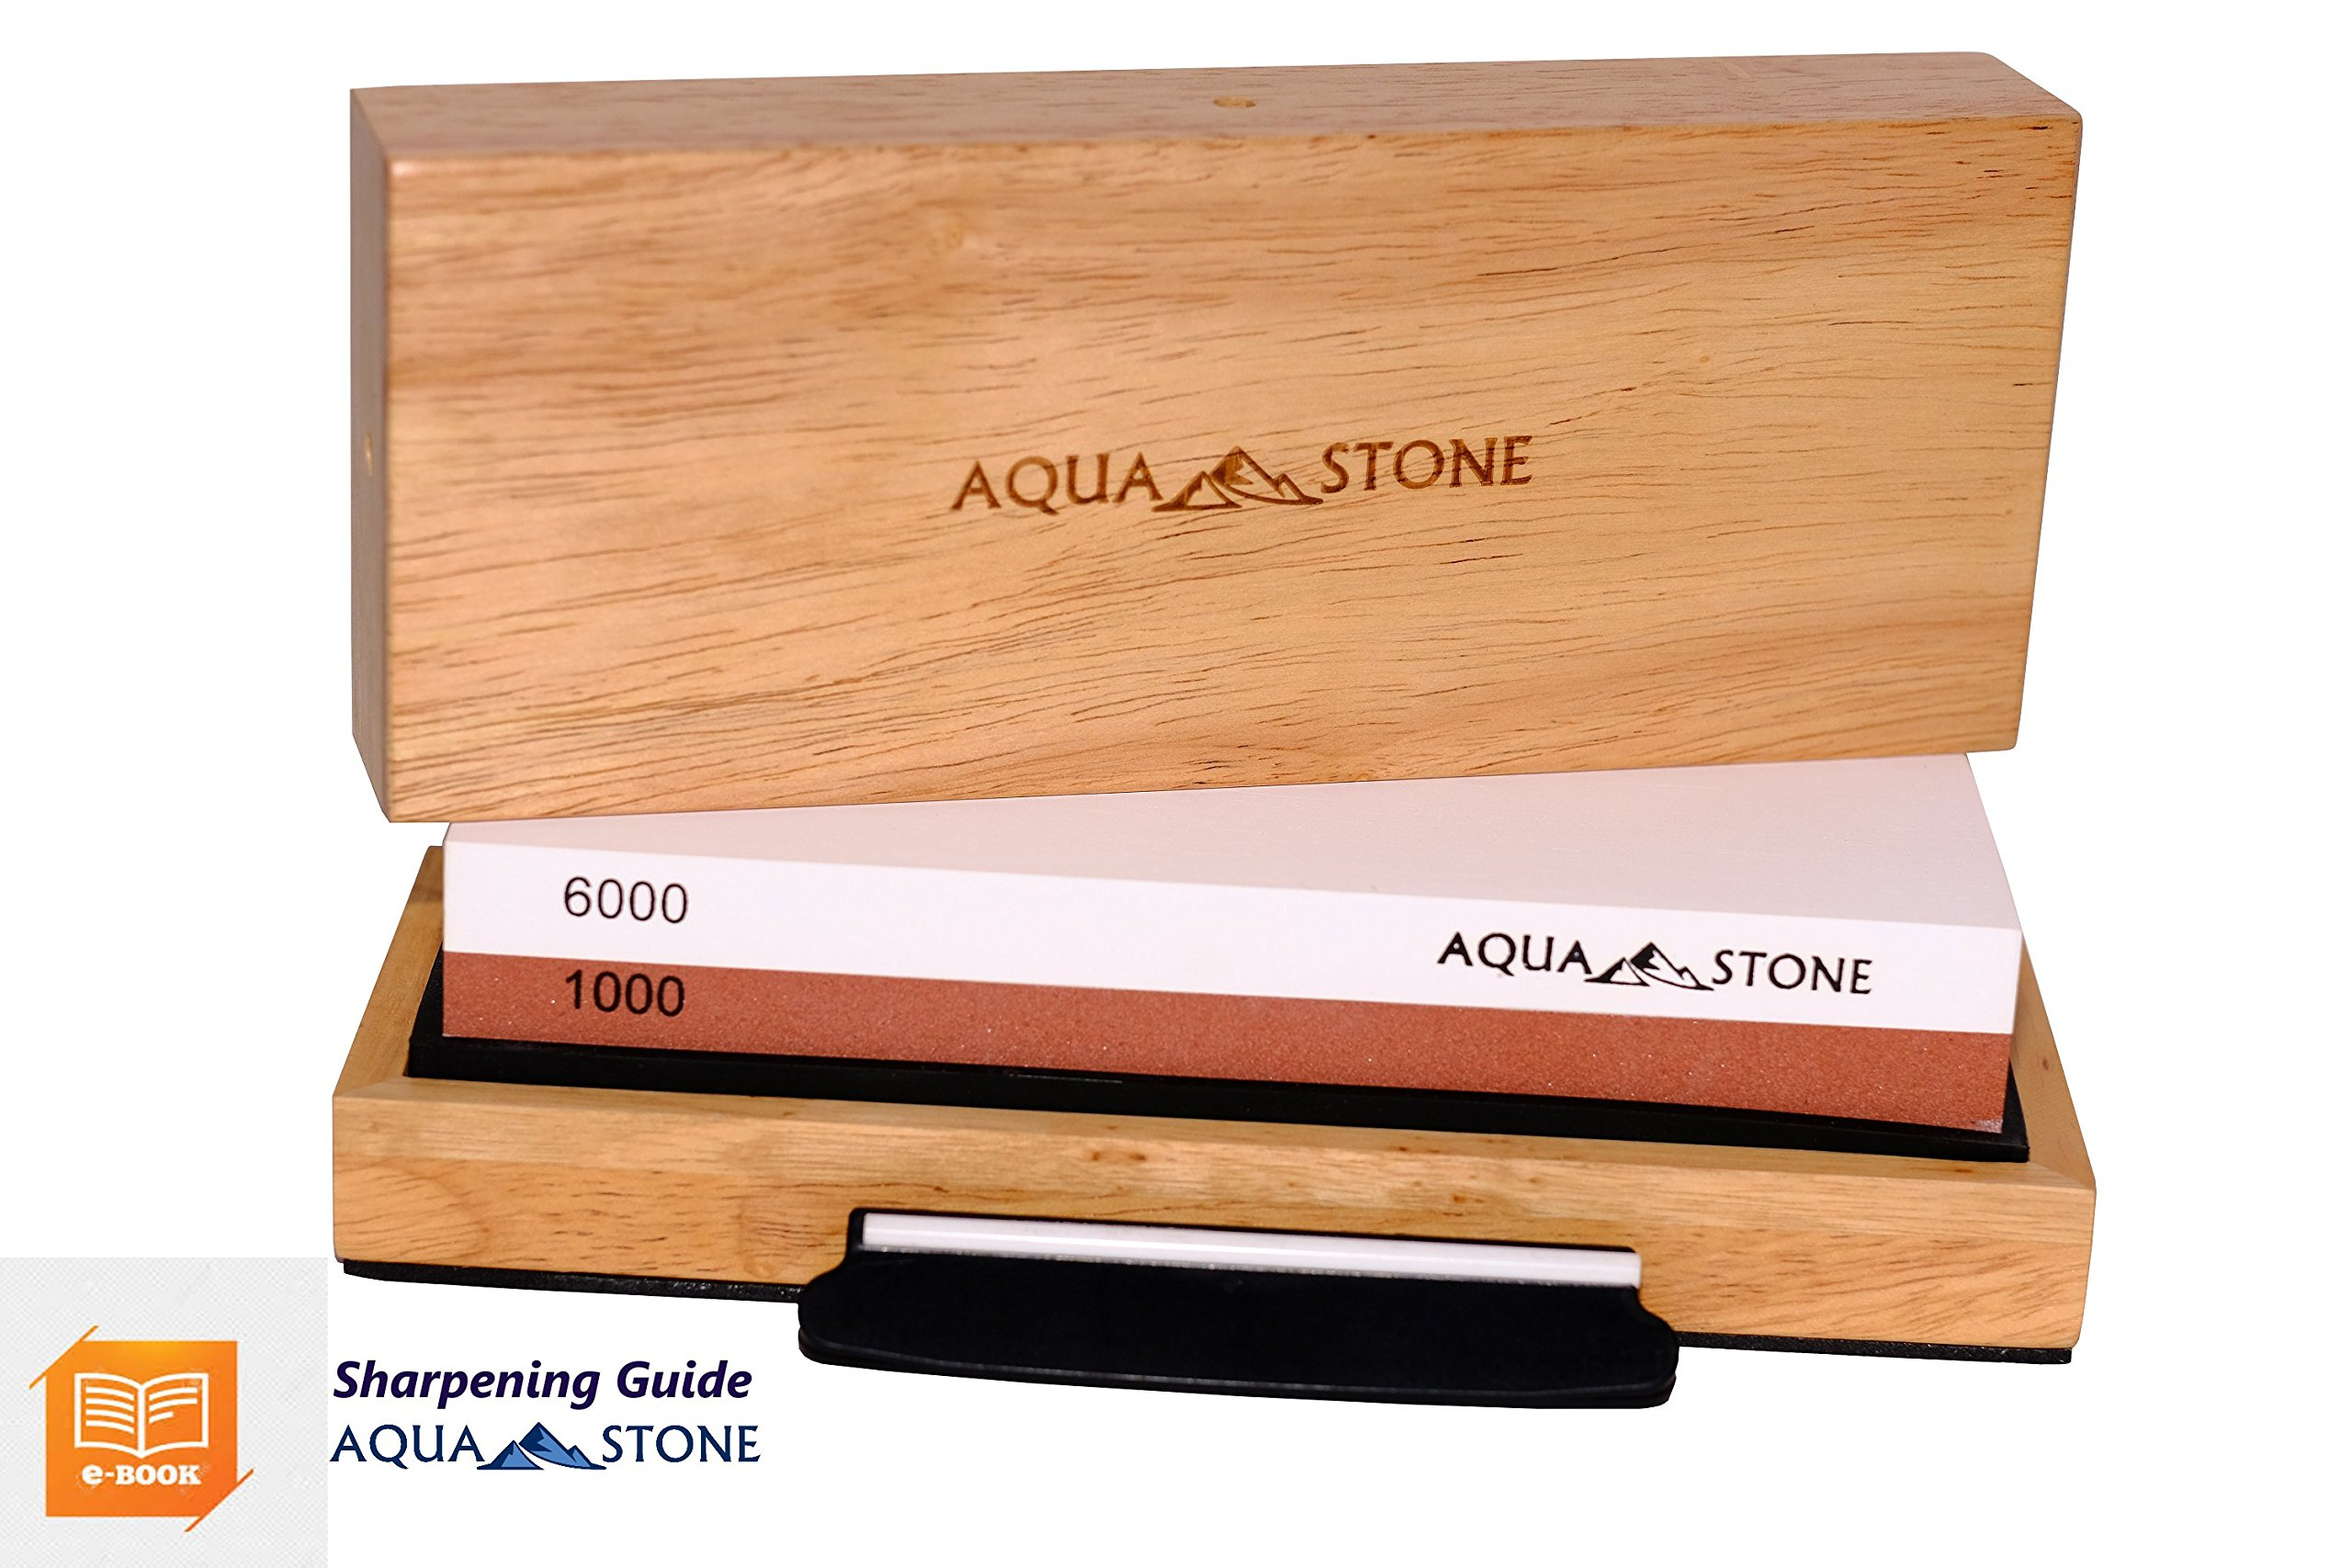 Professional Knife Sharpener 2 Side Sharpening Stone Kit For Chefs, Home Kitchen Knives.Whetstone Grit 1000/6000 Watersone,NonSlip Wood Base, FREE Angle Guide, Silicone Base with Stylish Wood GIFT Box by Aquastone (Image #1)